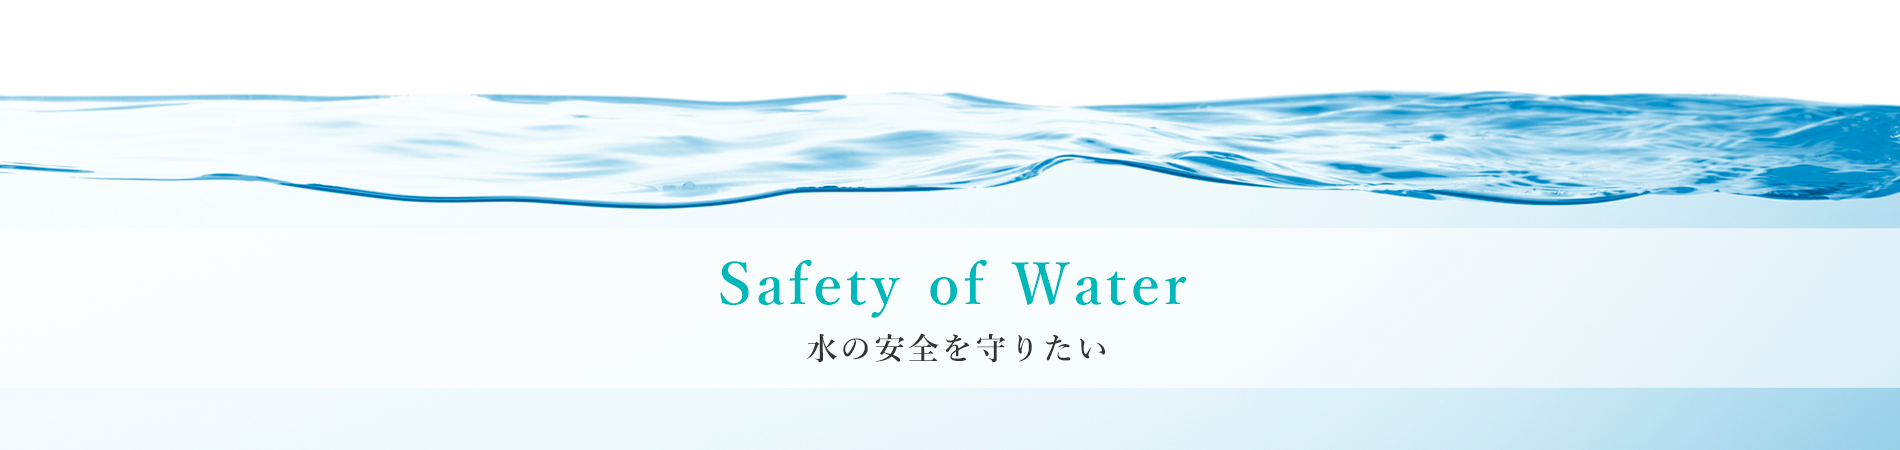 Safety of Water 水の安全を守りたい